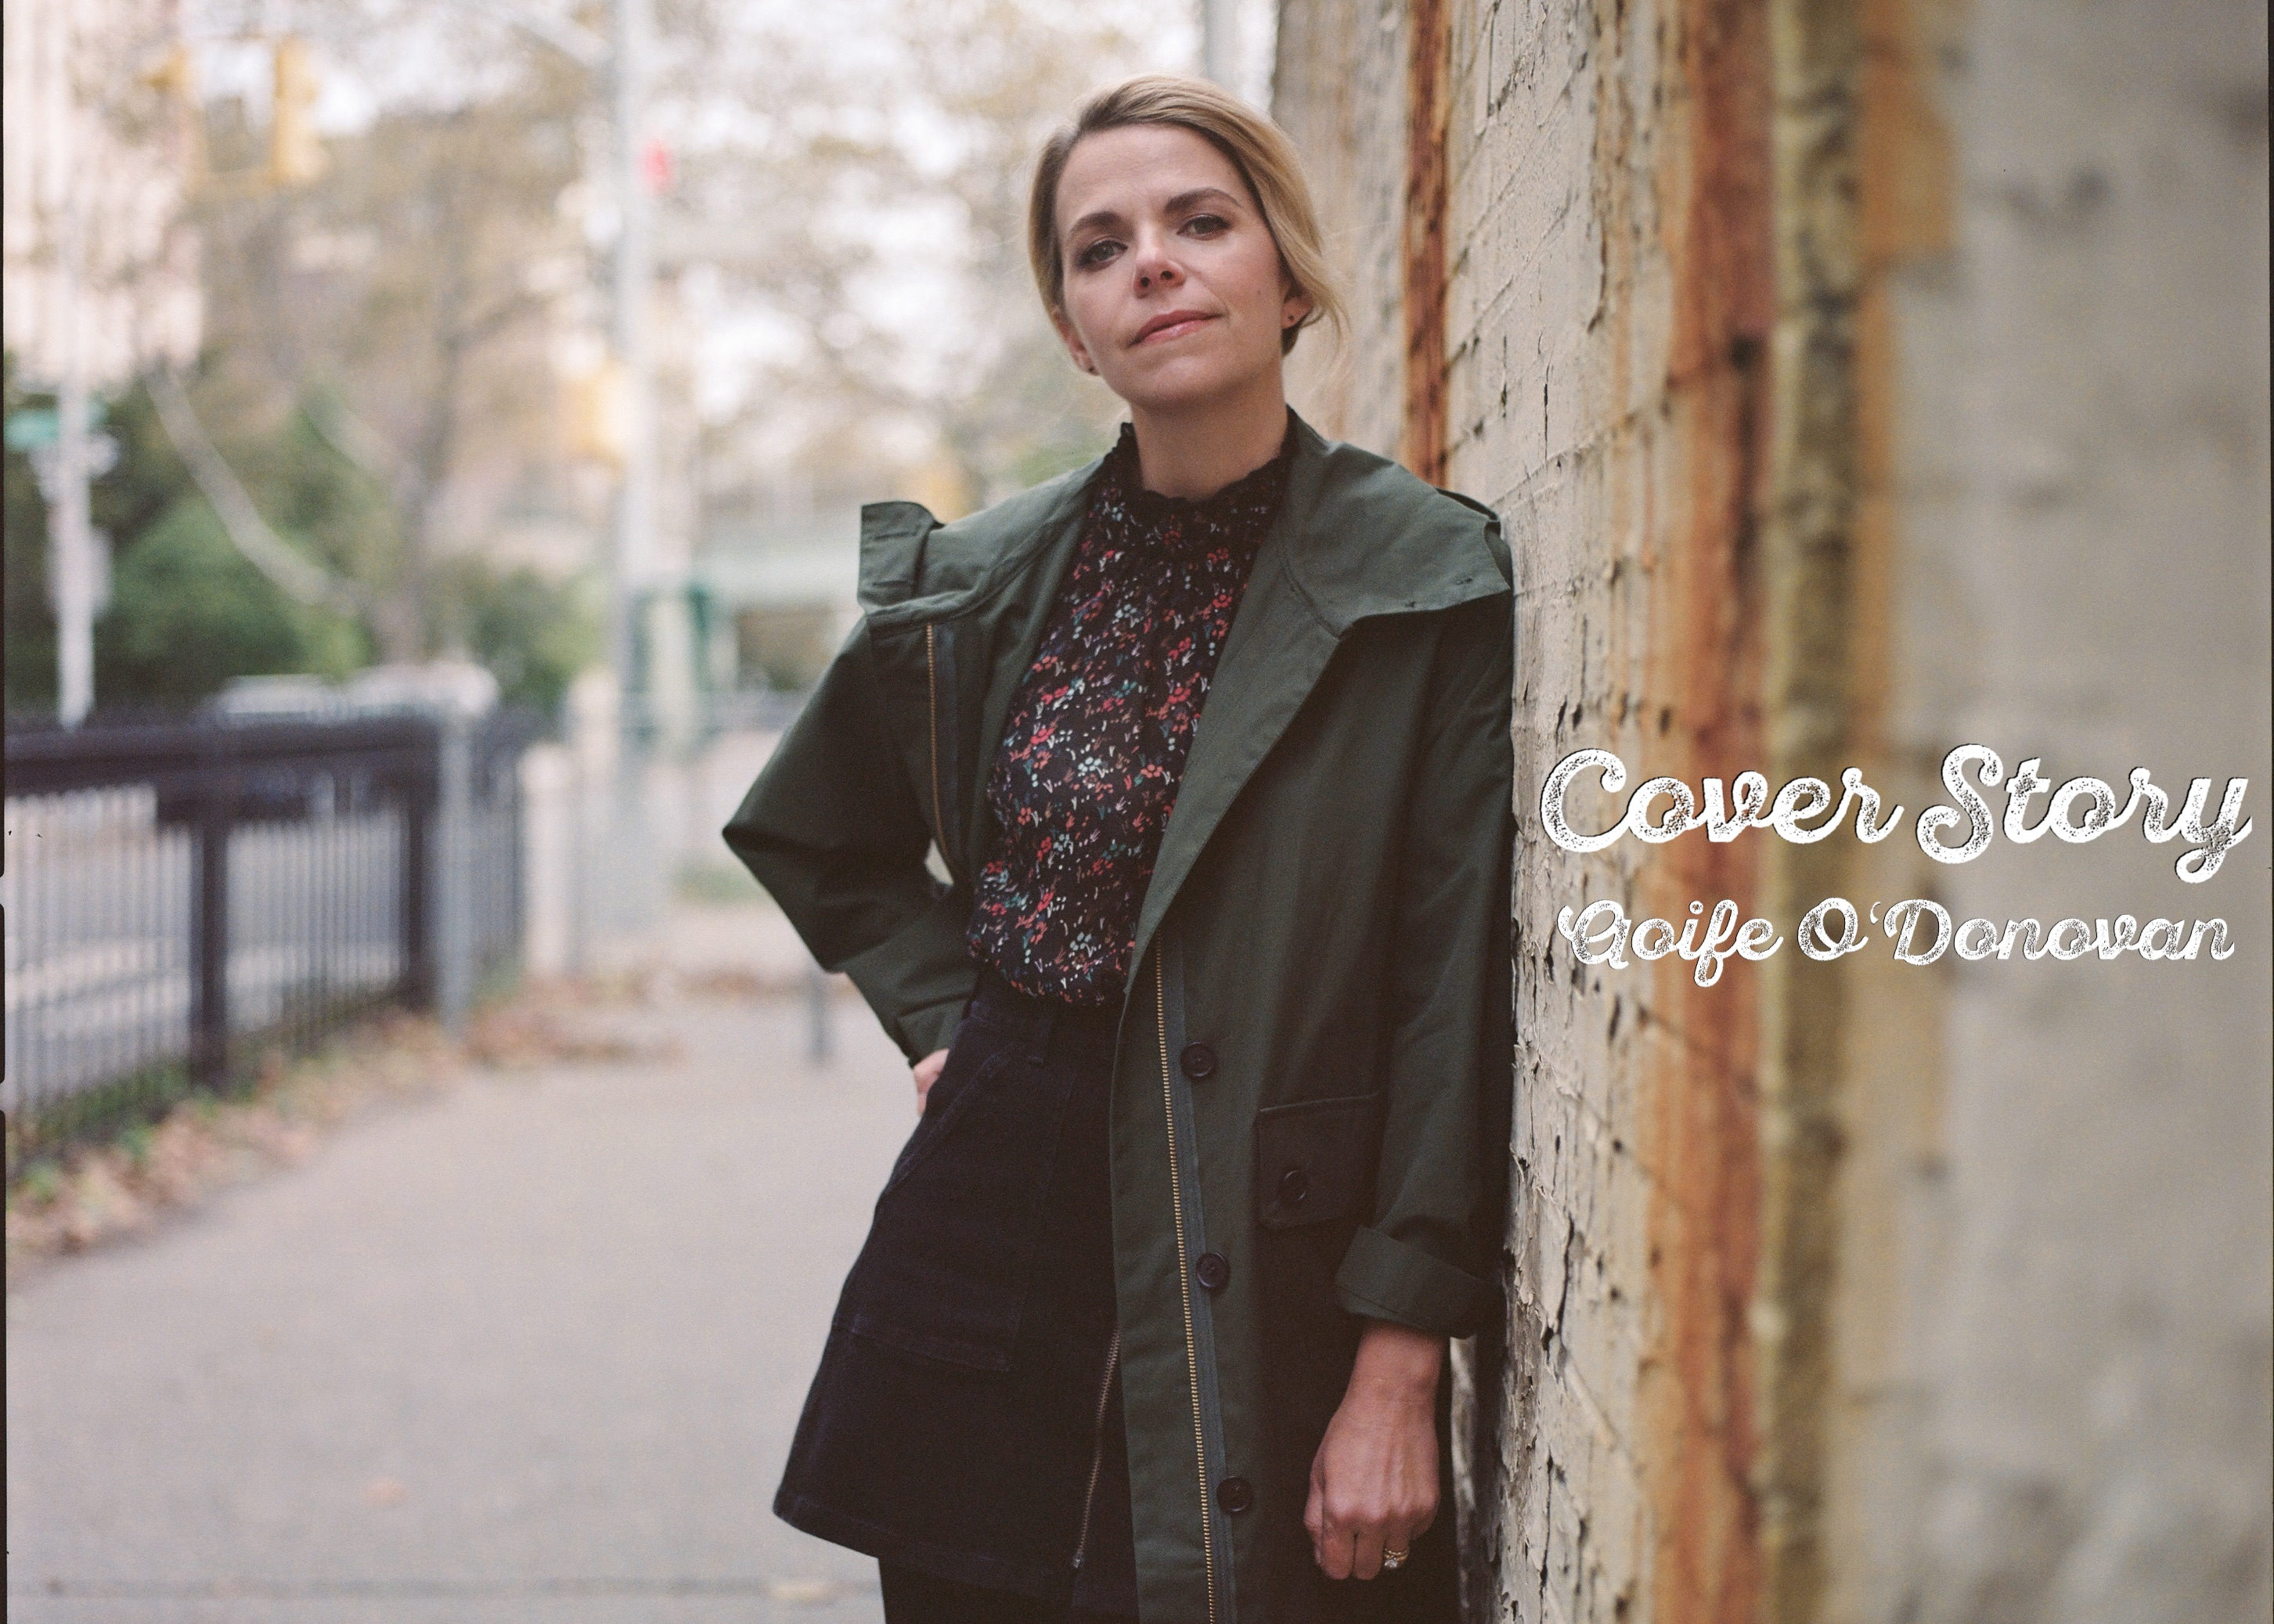 Aoife O'Donovan Finds Her Heart in the Verse of Others